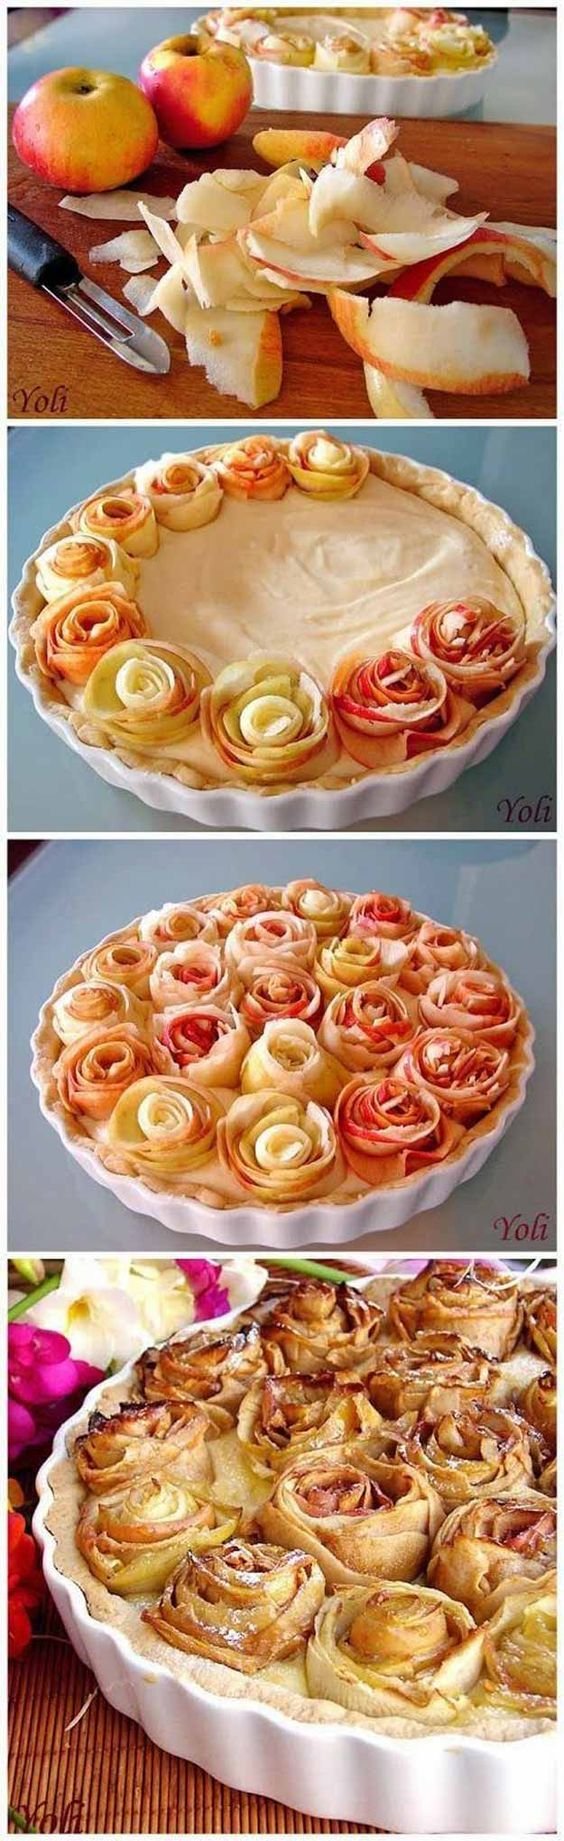 Homemade Apple Pie With Roses 10 Appetizing Apple Pie Recipe Ideas